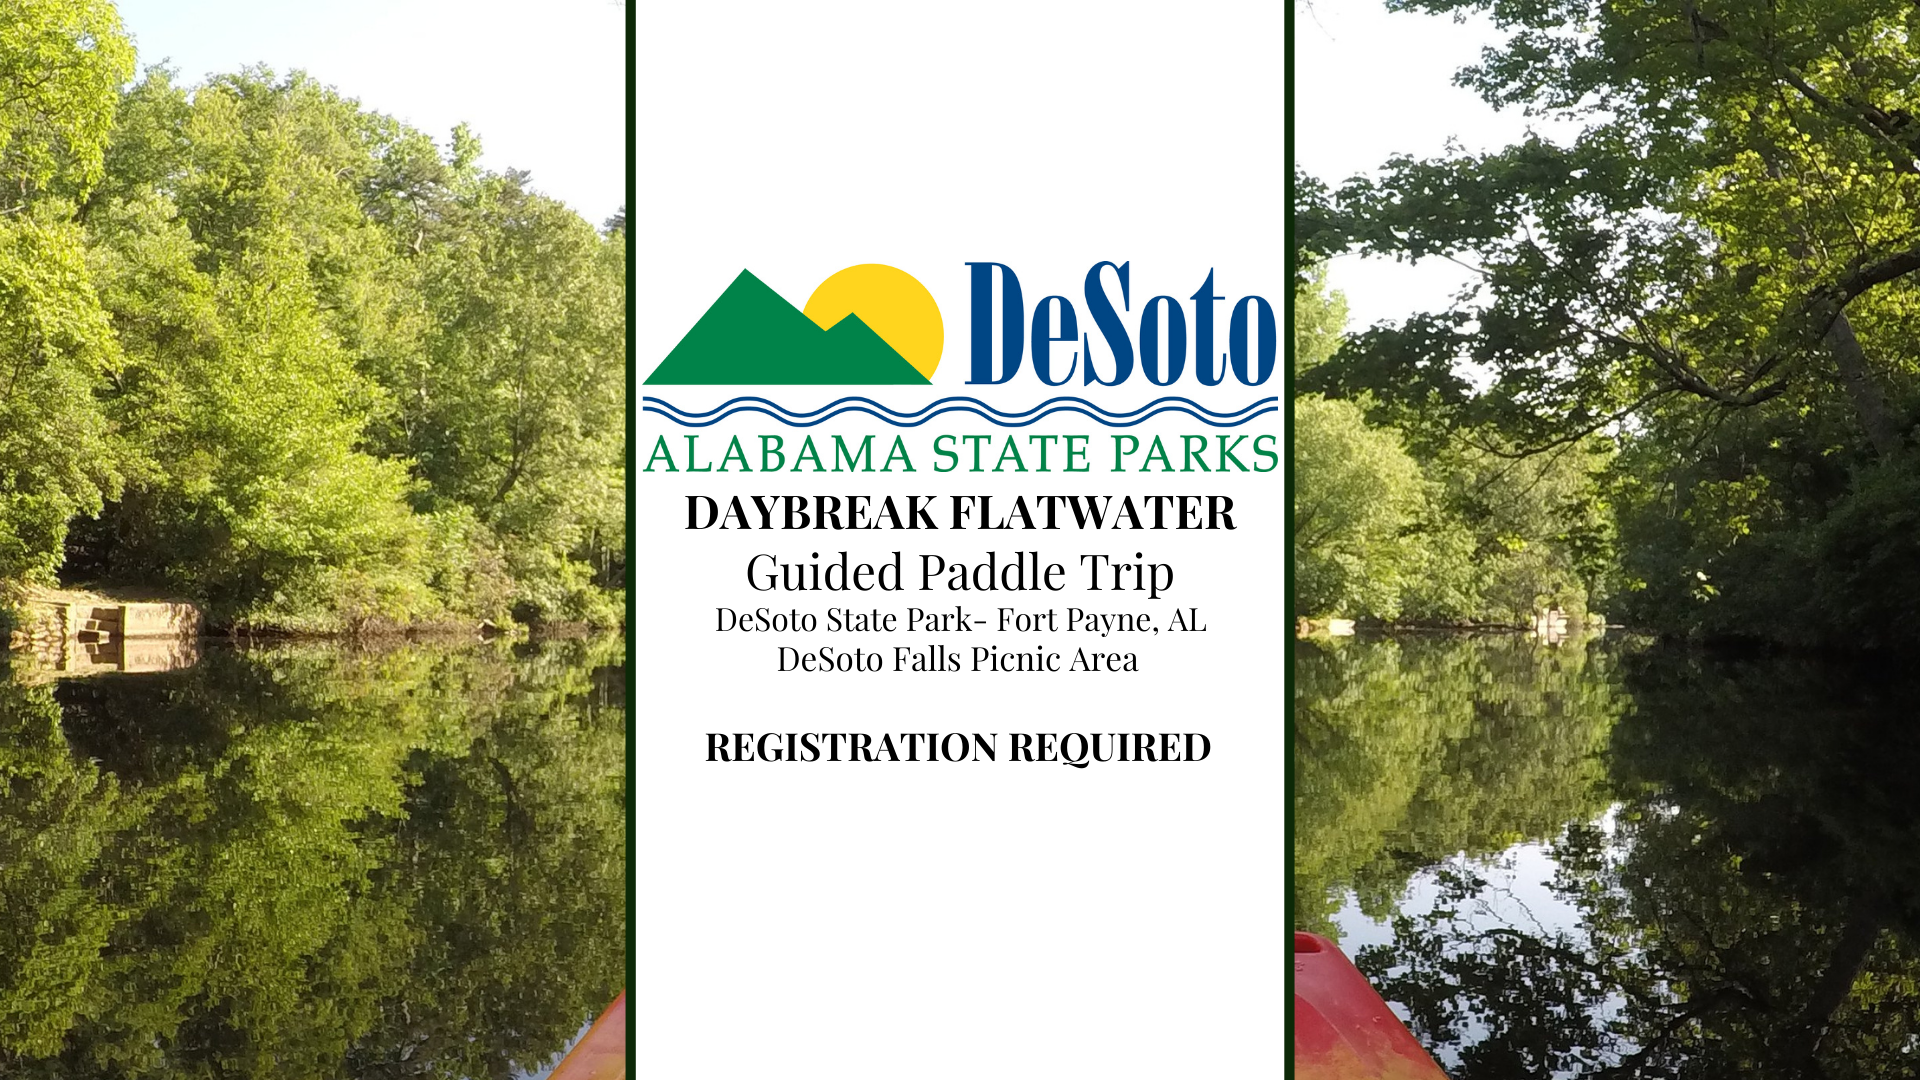 DSP Daybreak Flatwater Paddle Trip